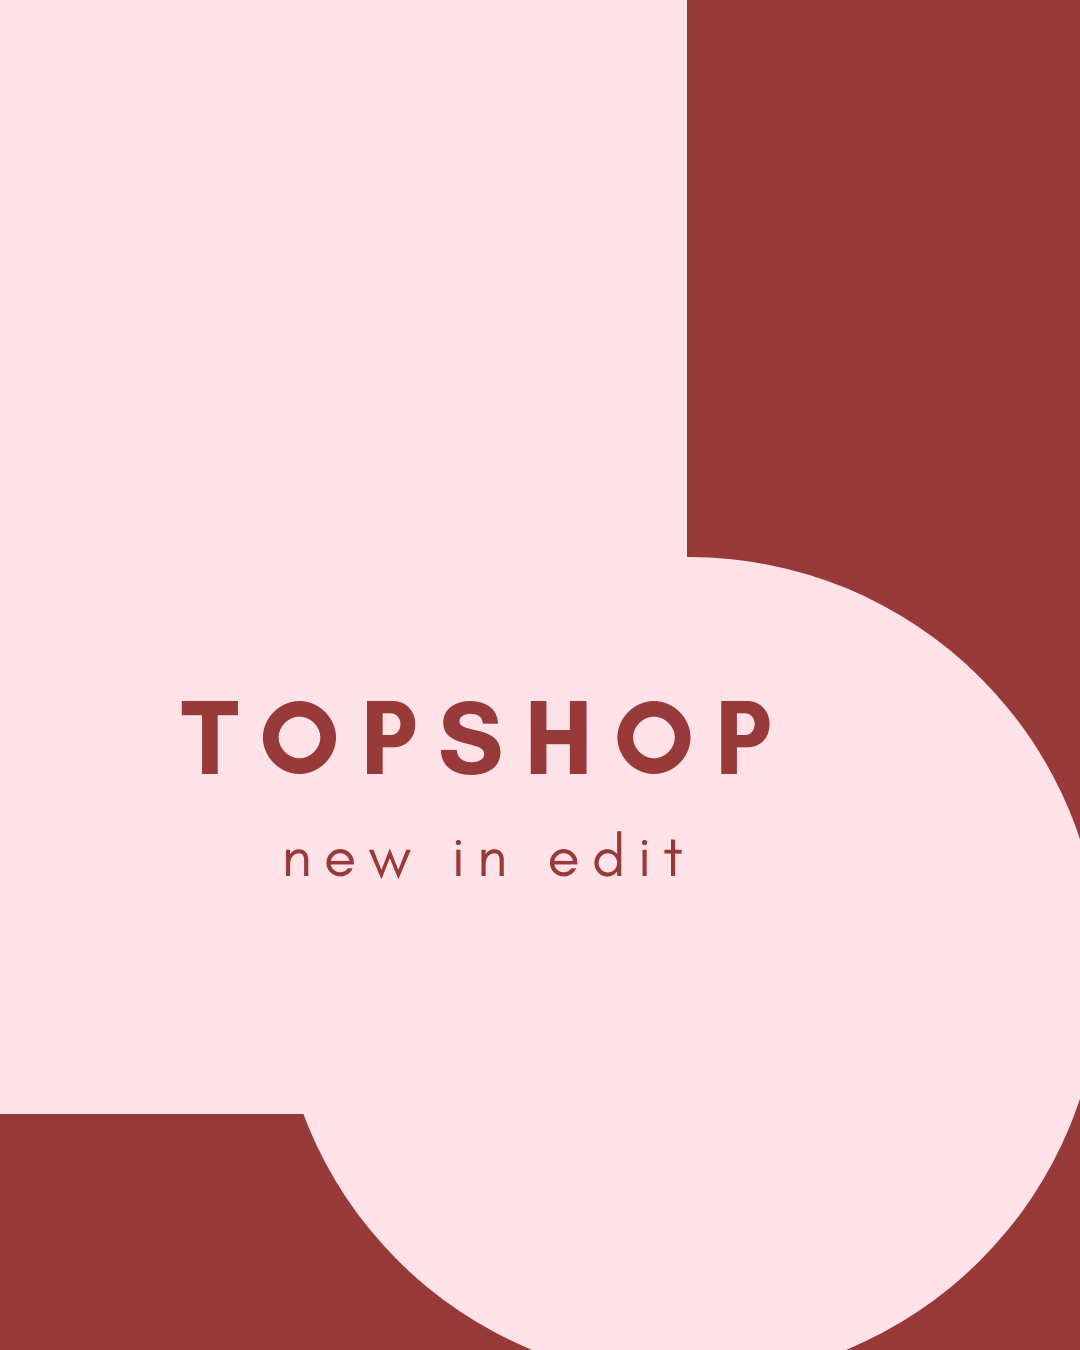 graphic design, topshop, cover image, blush, maroon